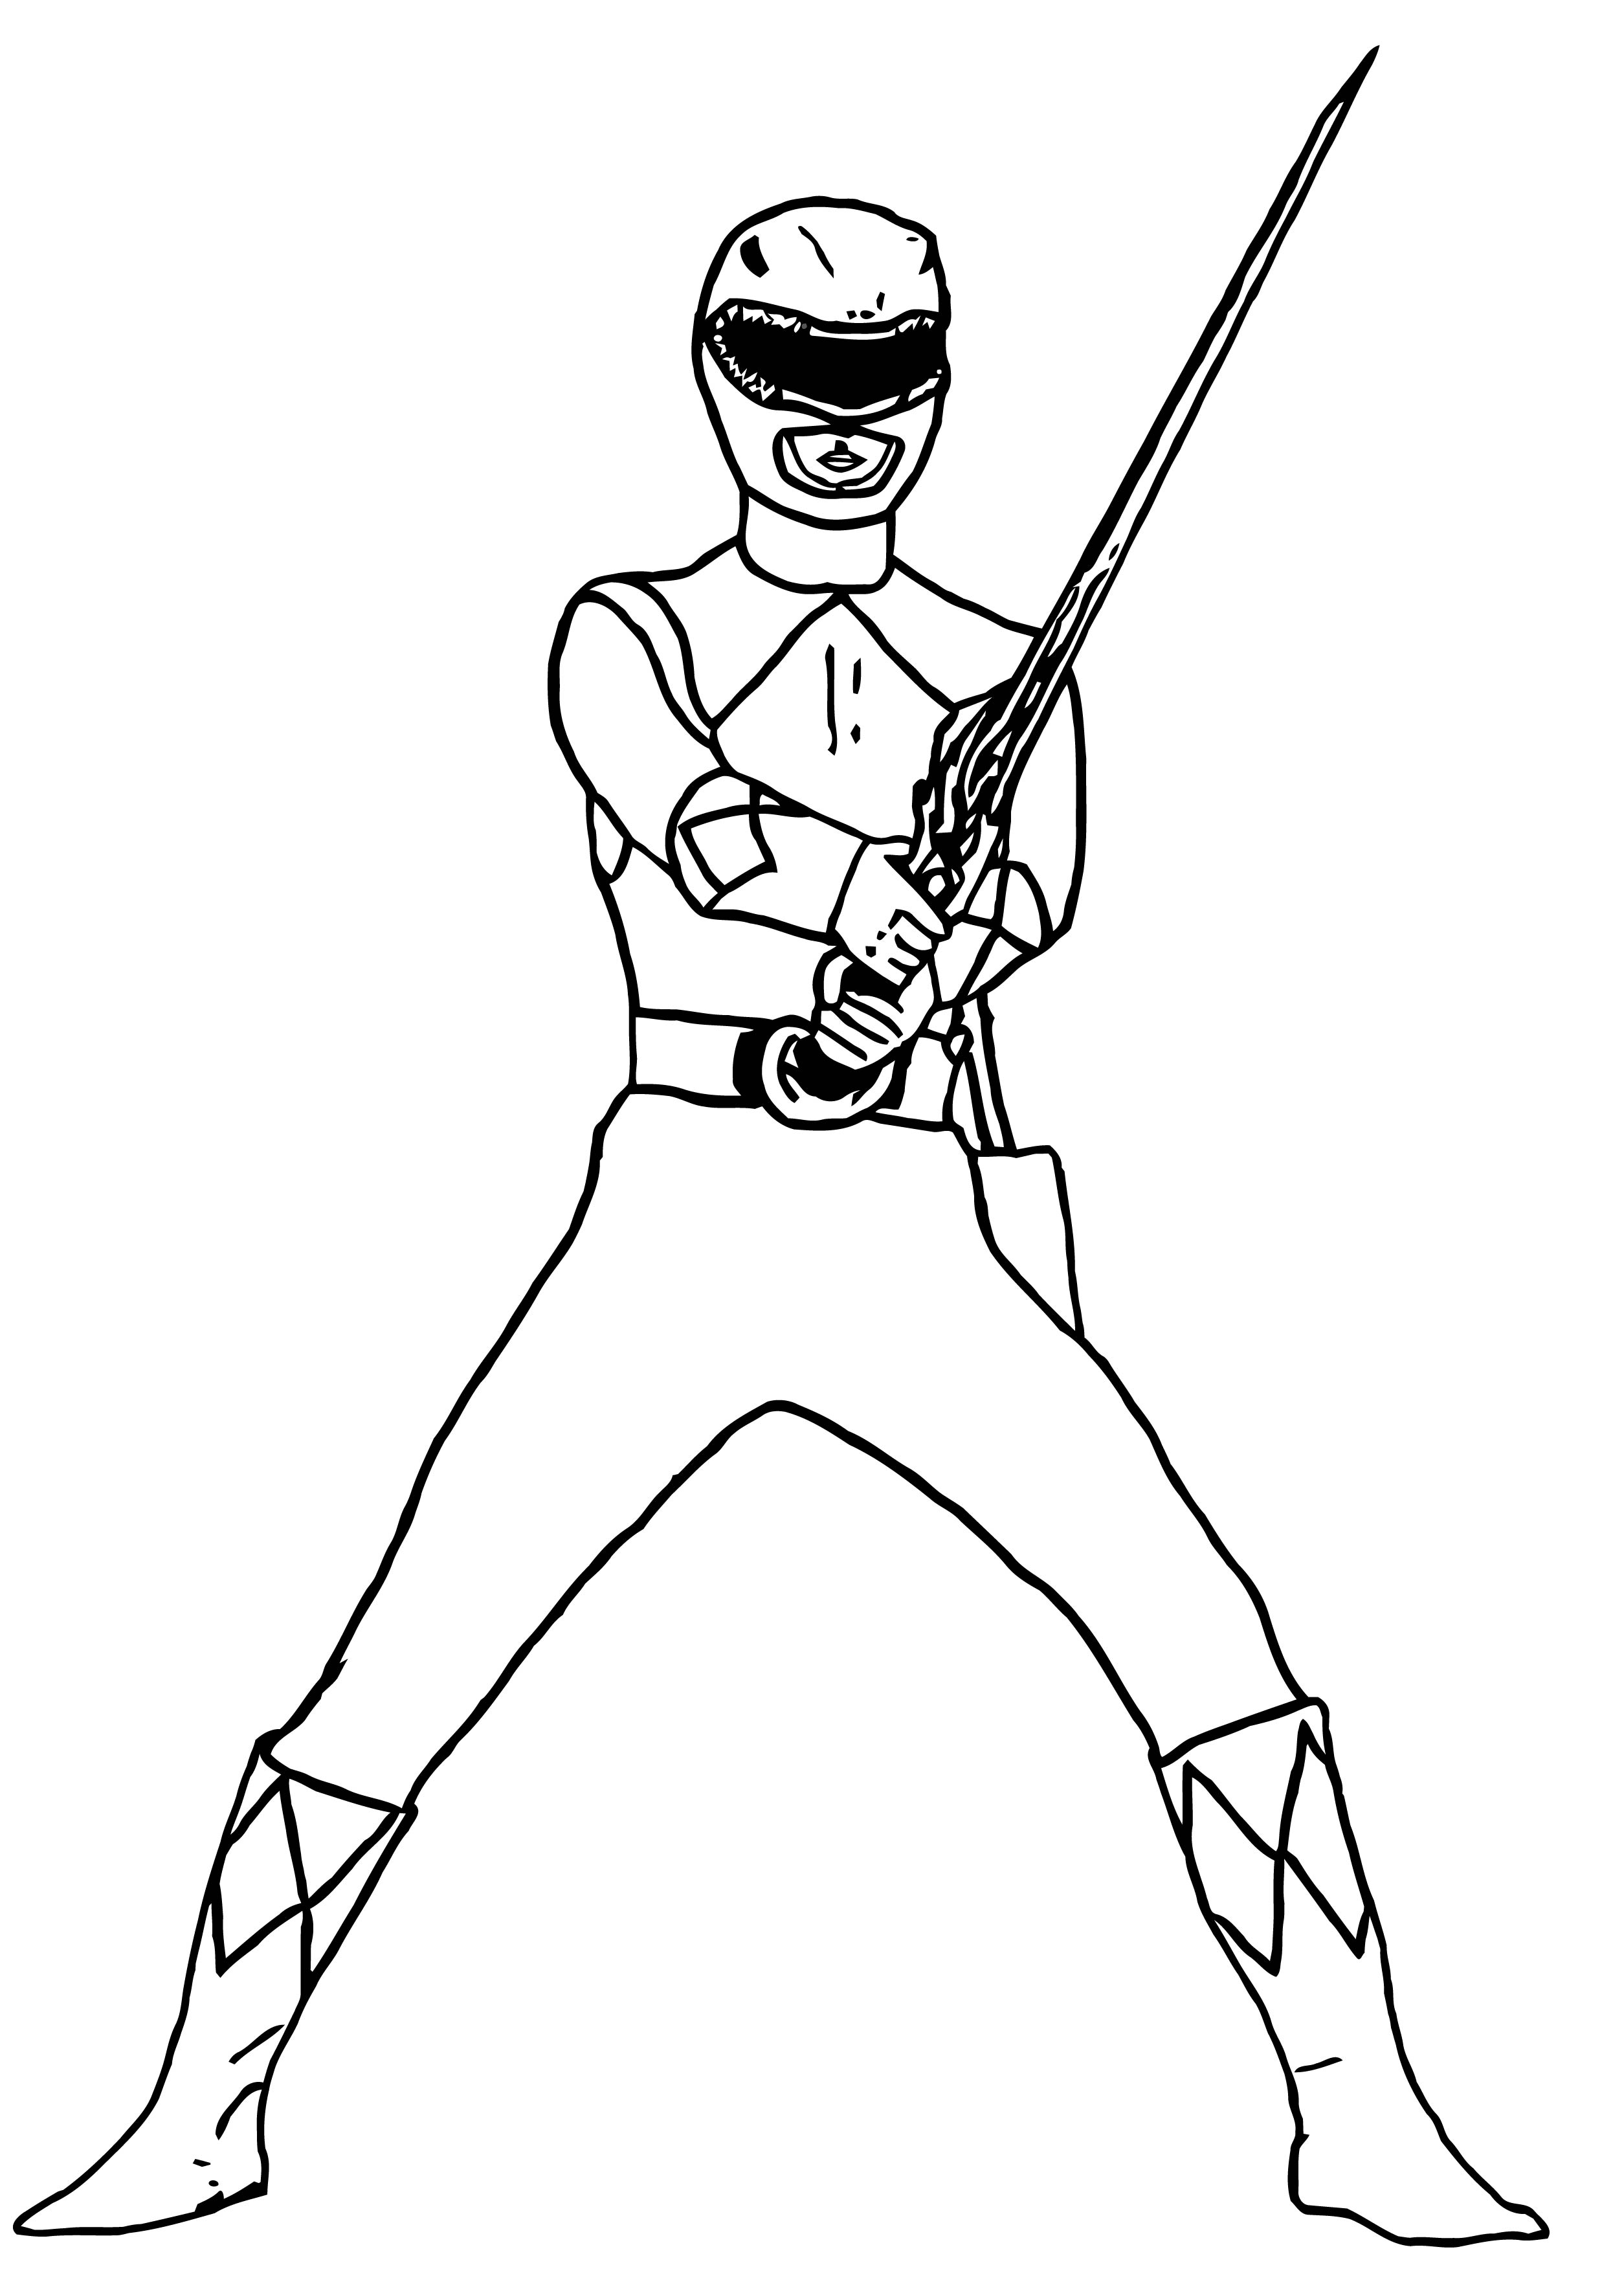 Mighty Morphin Power Ranger Coloring Page